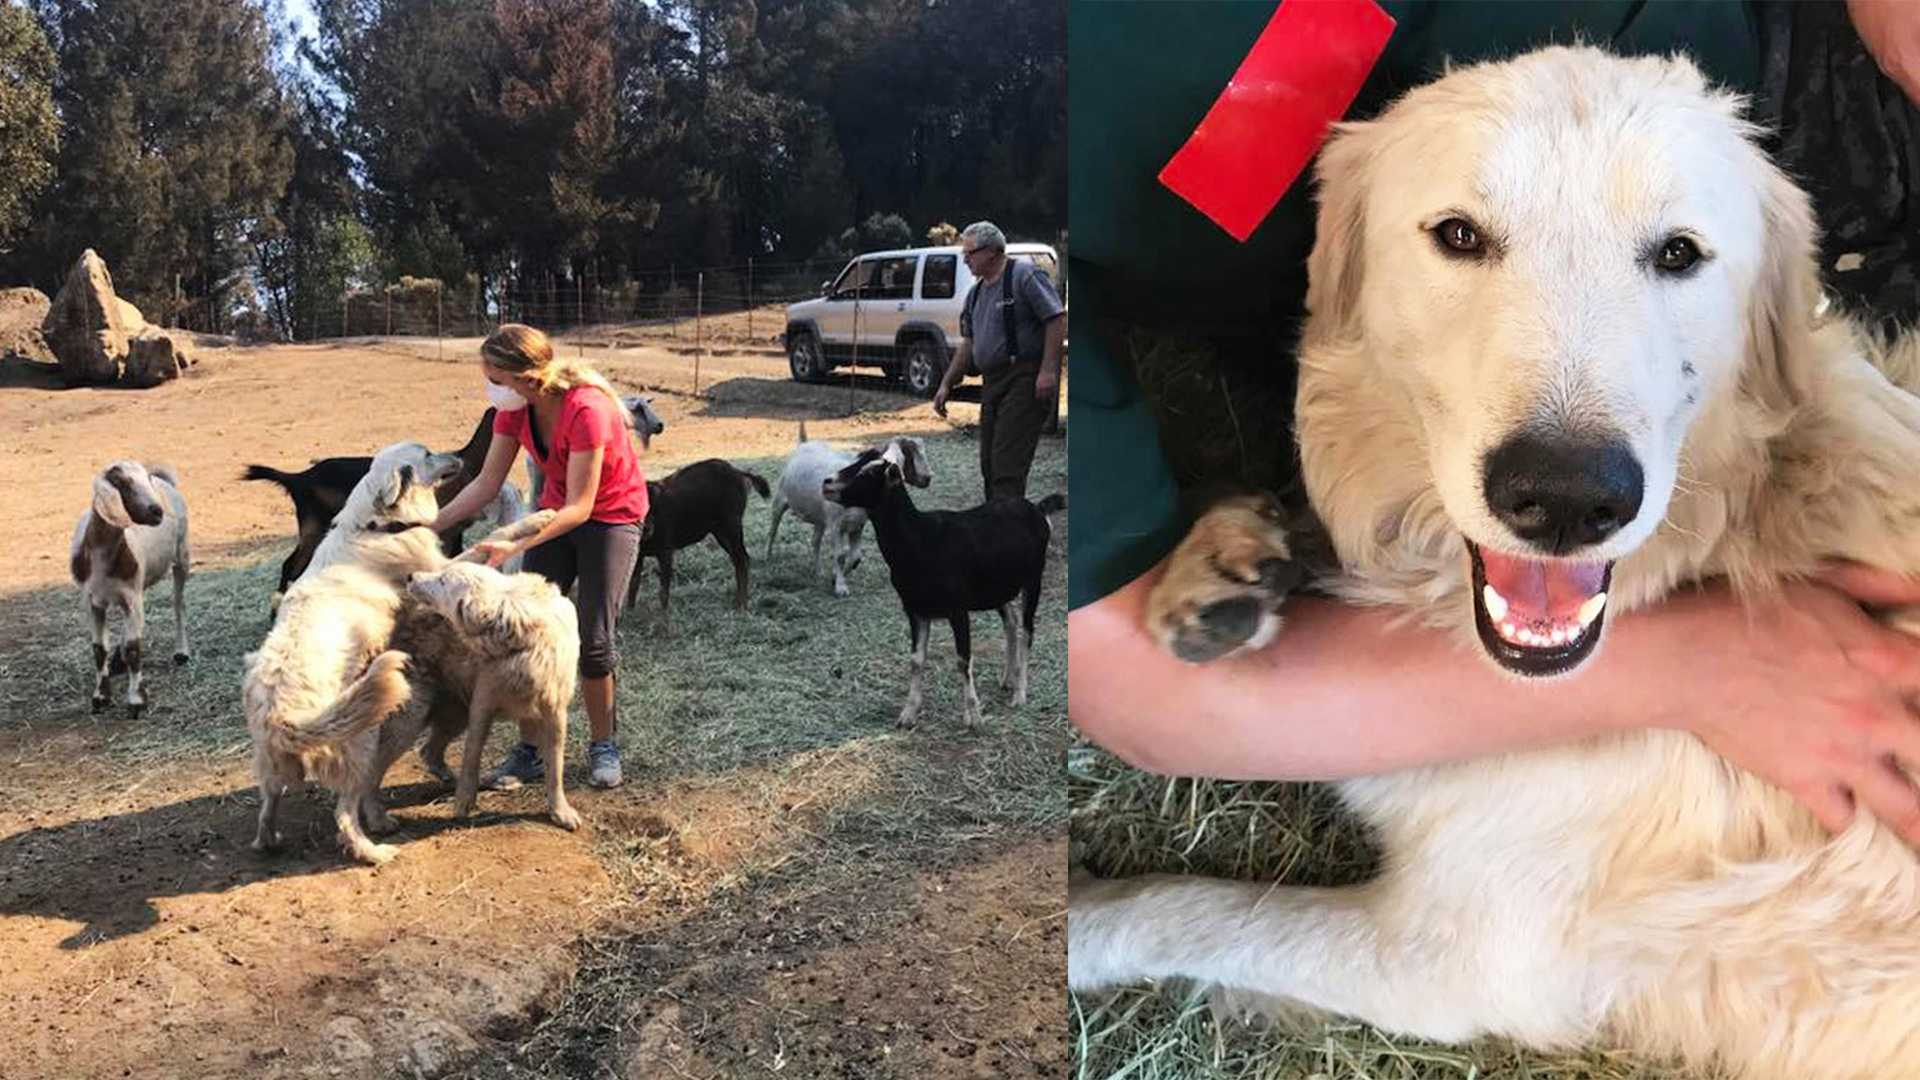 Odin, his sister Tessa and the goats got some much-needed human love after surviving the Tubbs Fire.